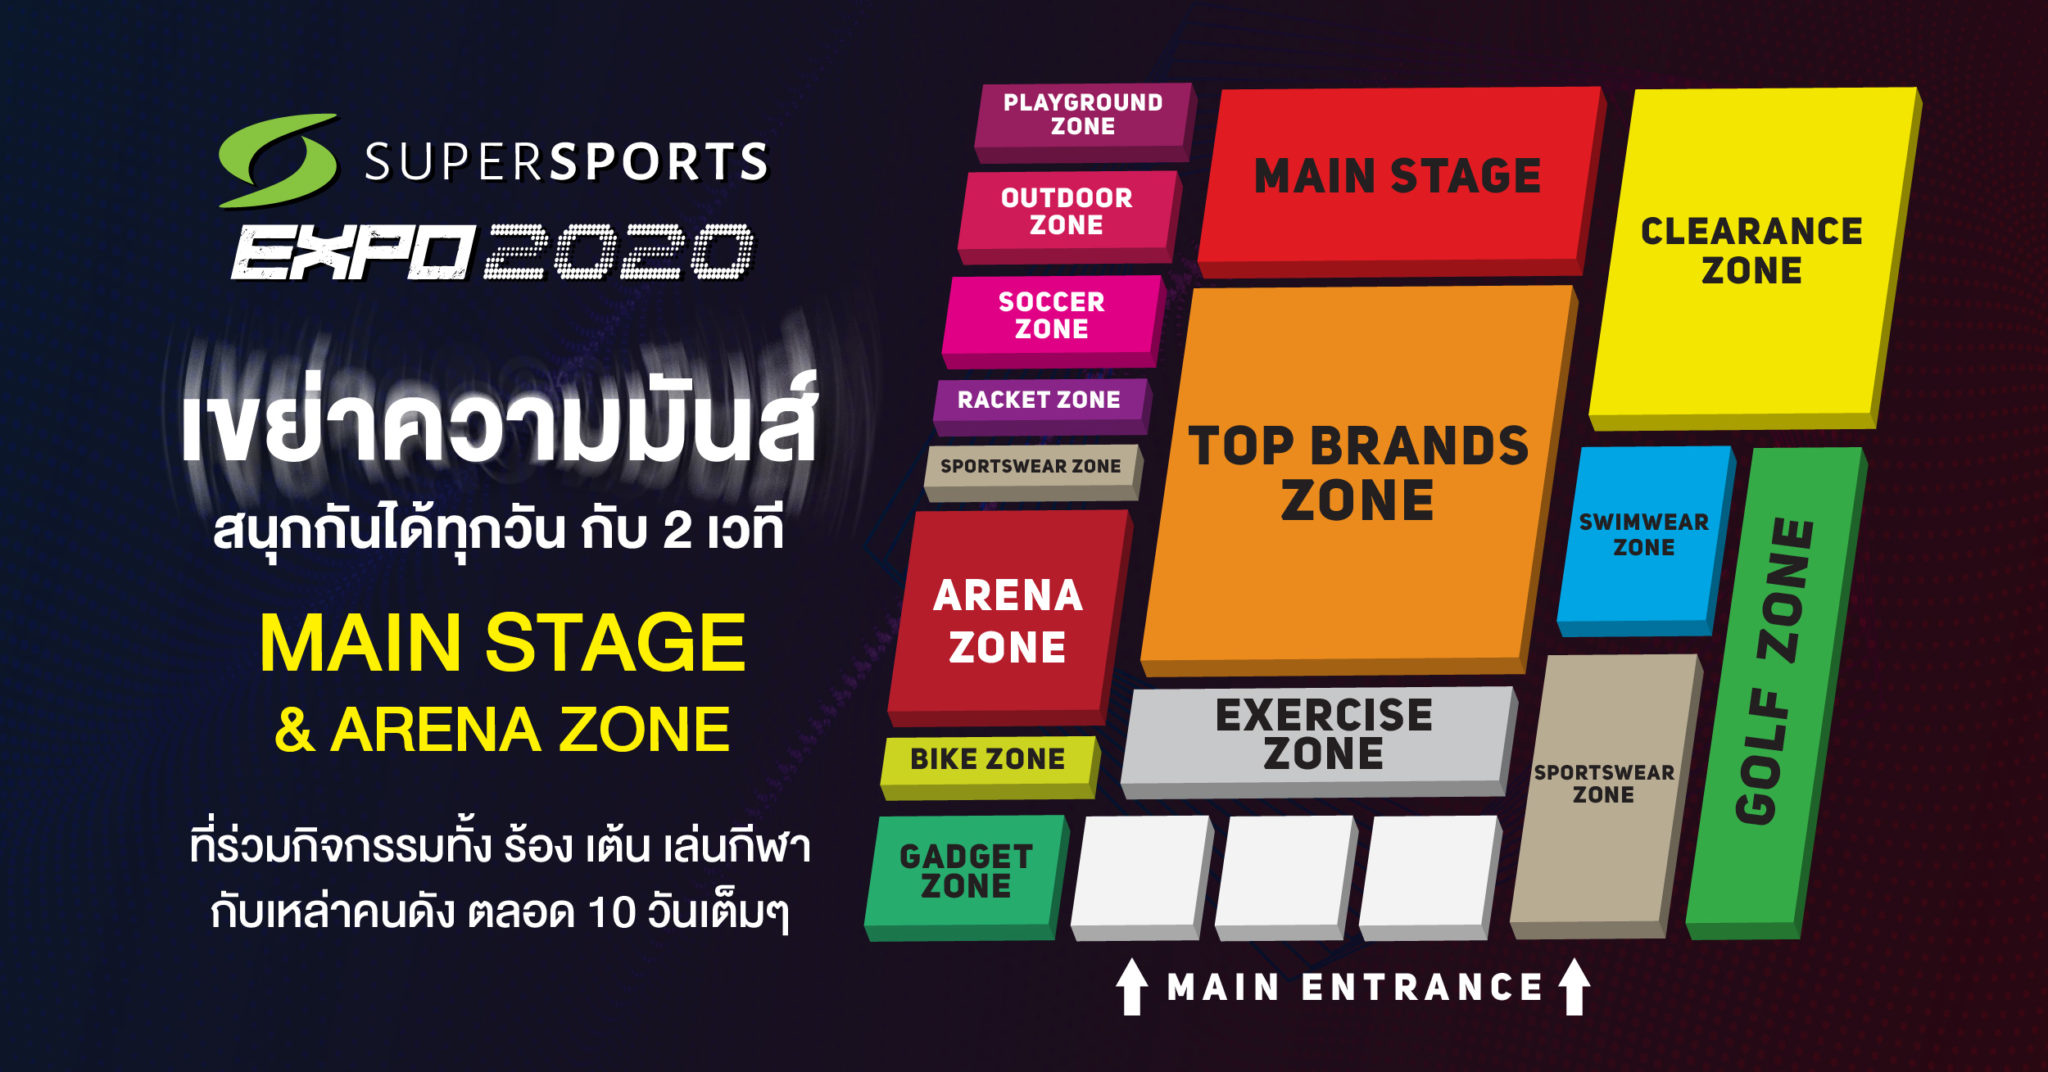 SUPERSPORTS EXPO 2020